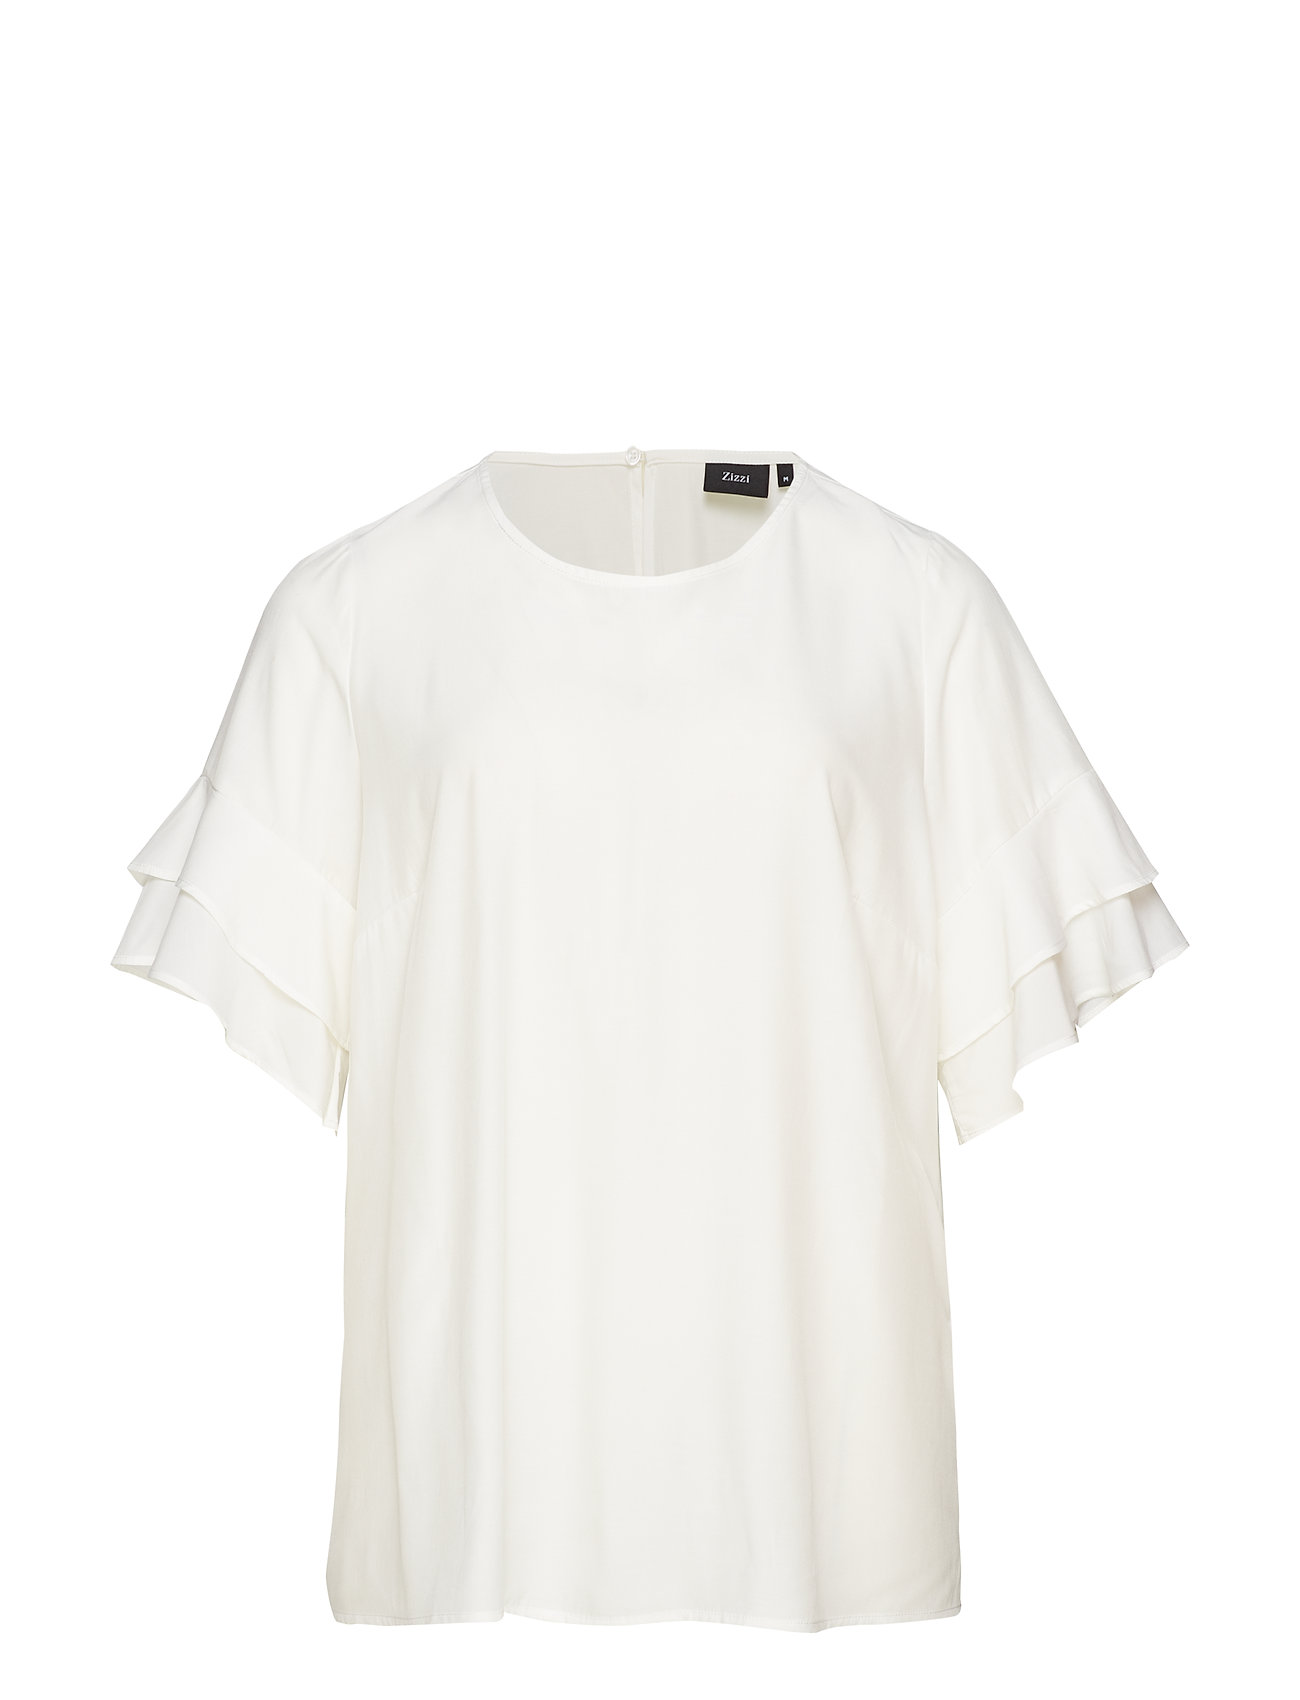 Zizzi XANDRINE, S/S, BLOUSE - OFF-WHITE